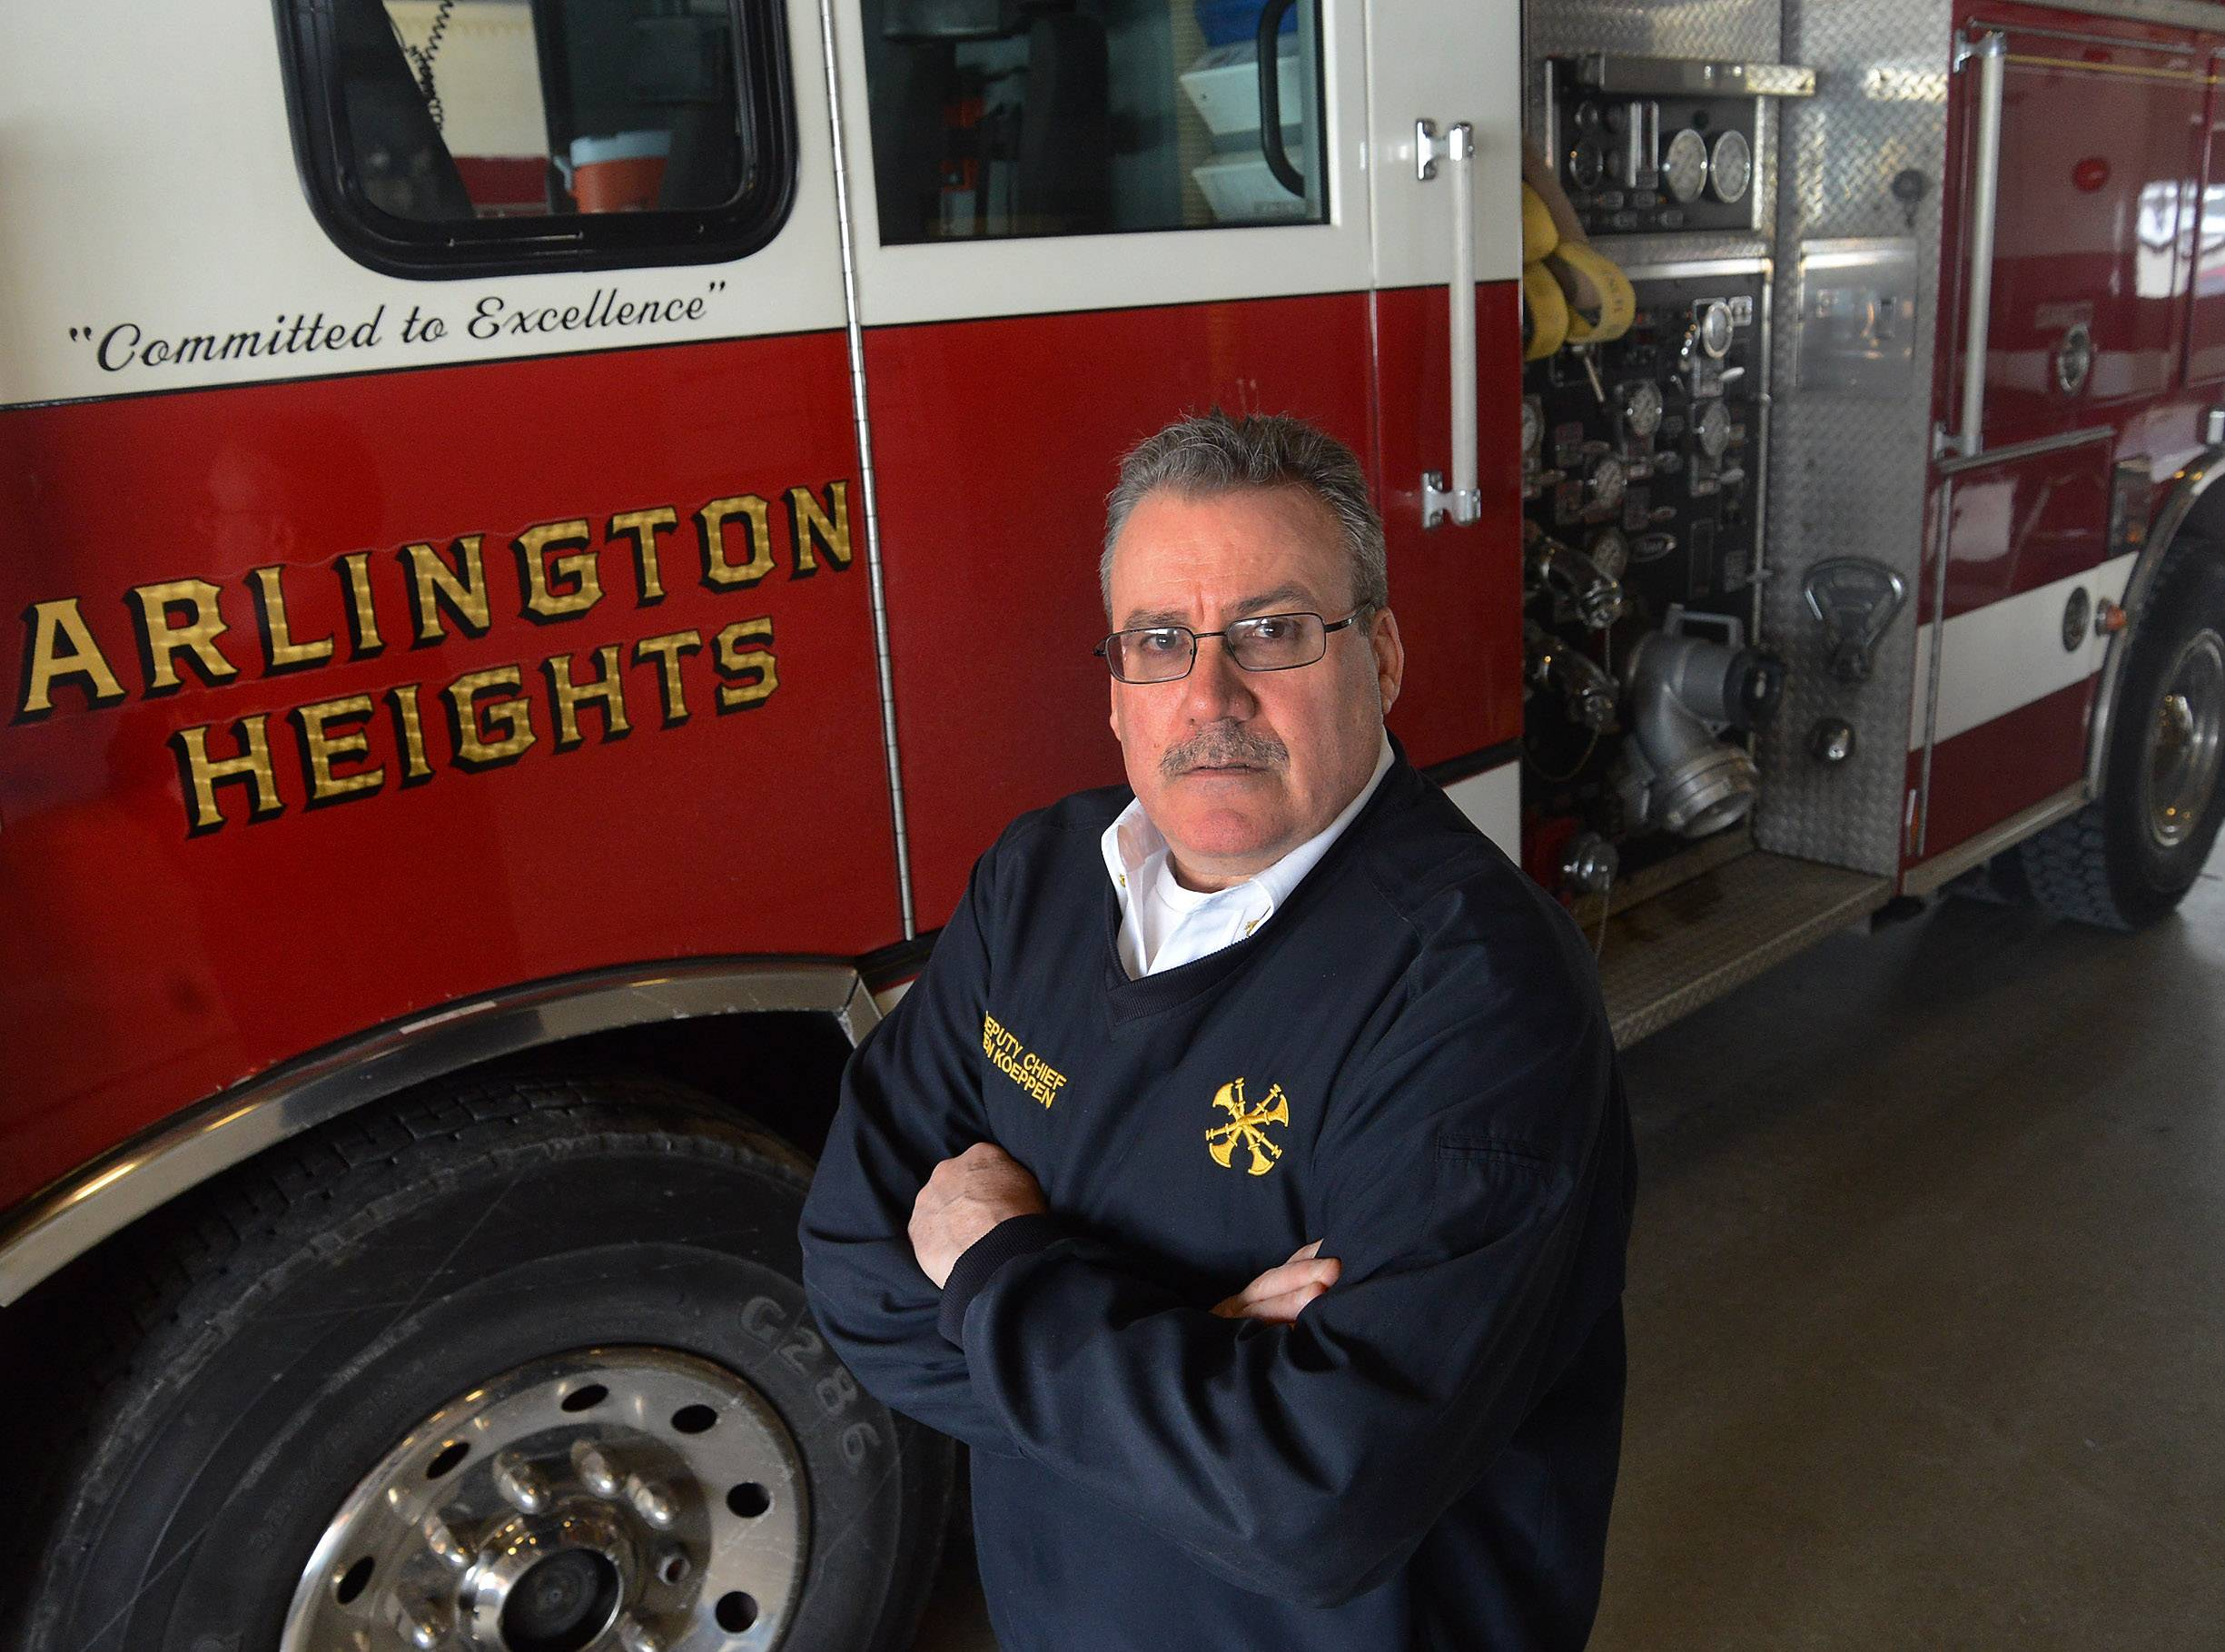 Arlington Heights names acting fire chief